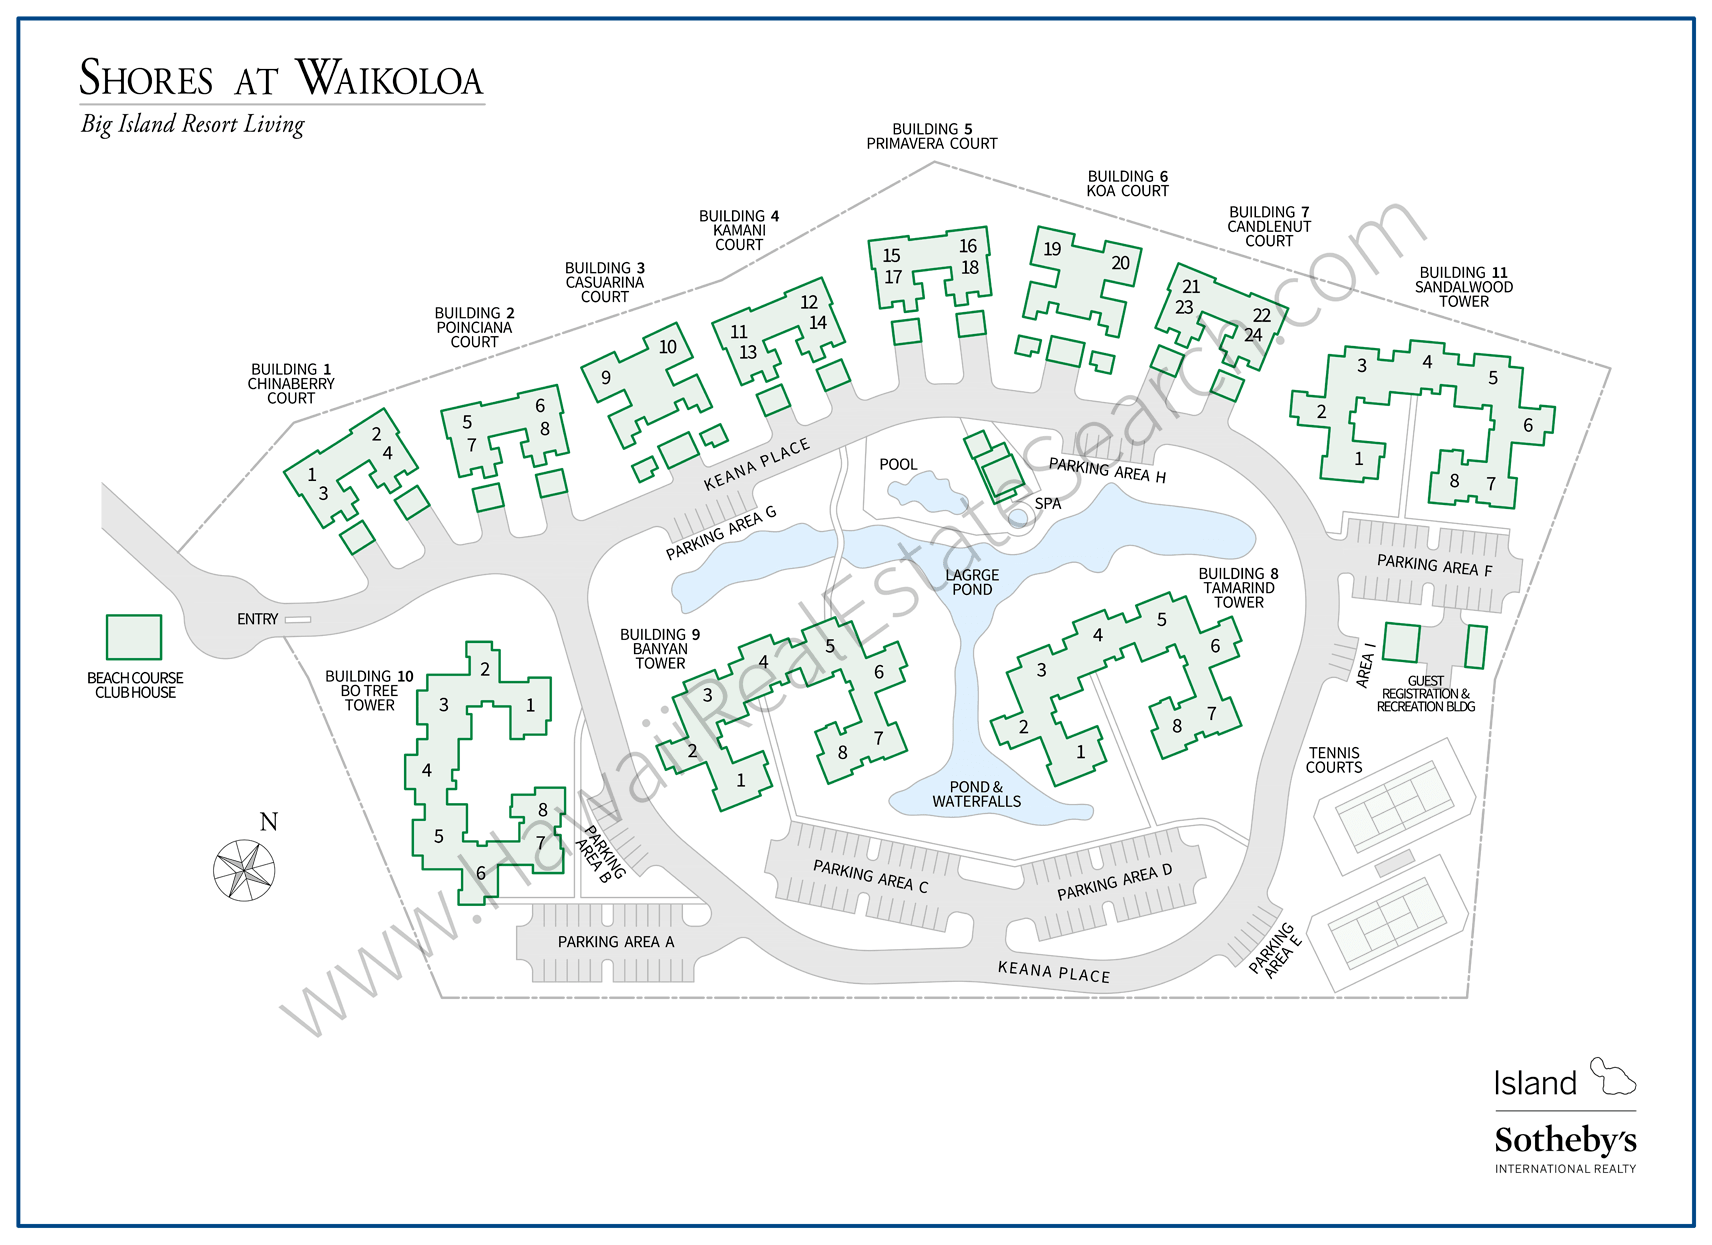 Shores at Waikoloa Property Map Updated